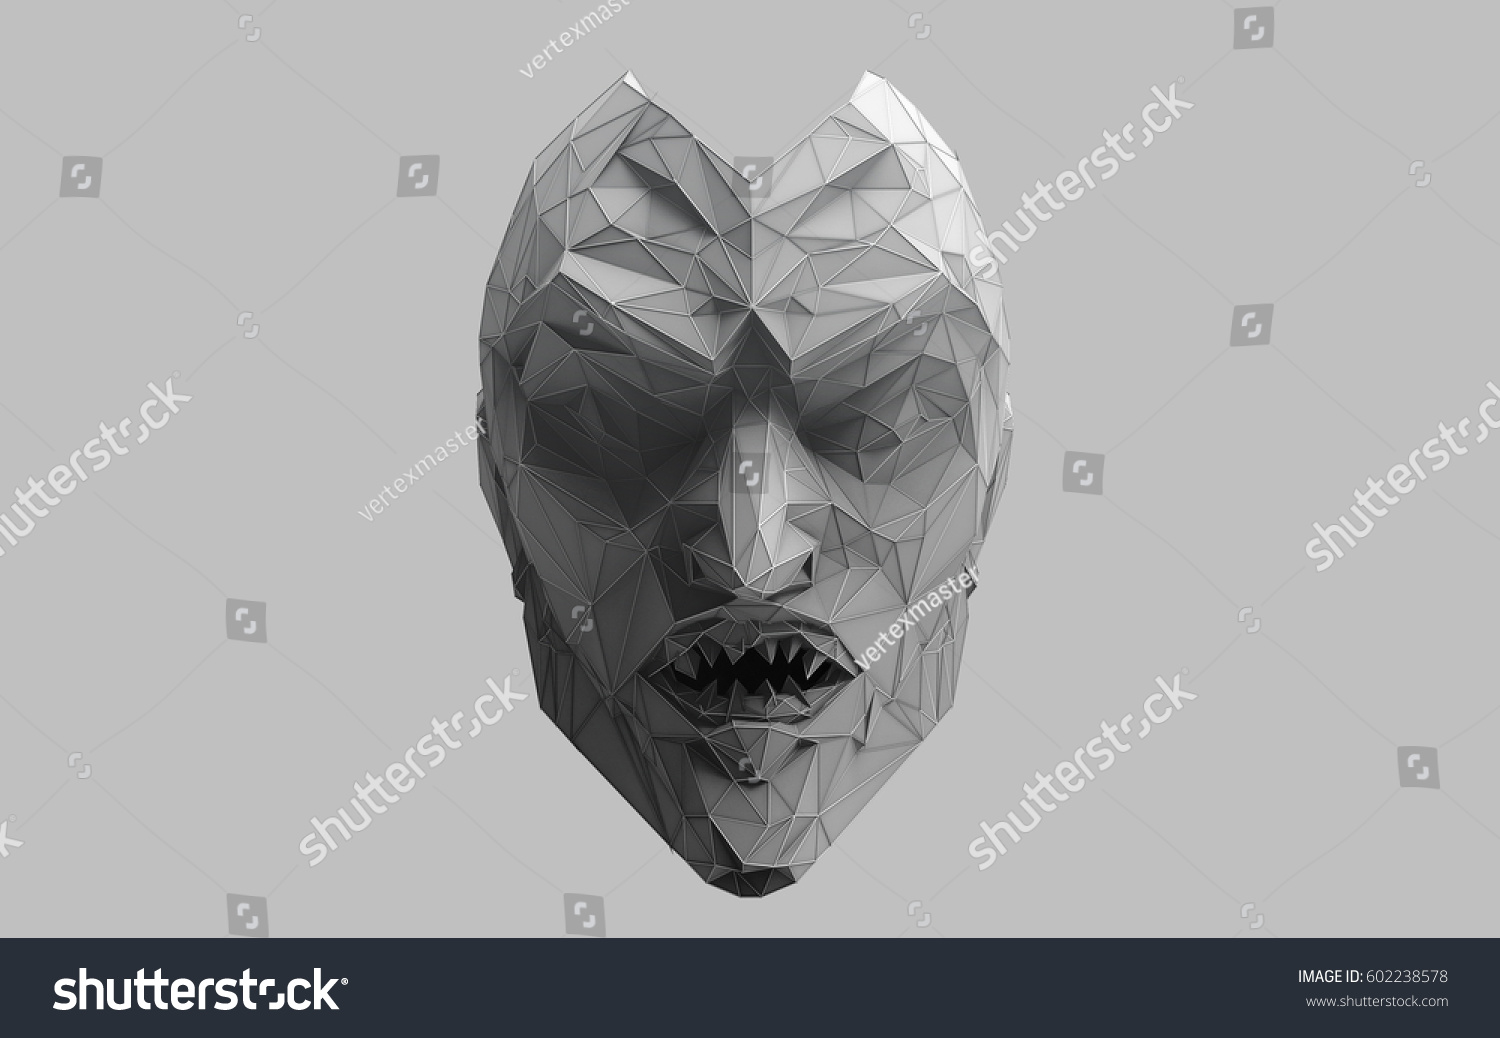 3 D WIRE FRAME ABSTRACT FLAT Shaded Stock Illustration 602238578 ...